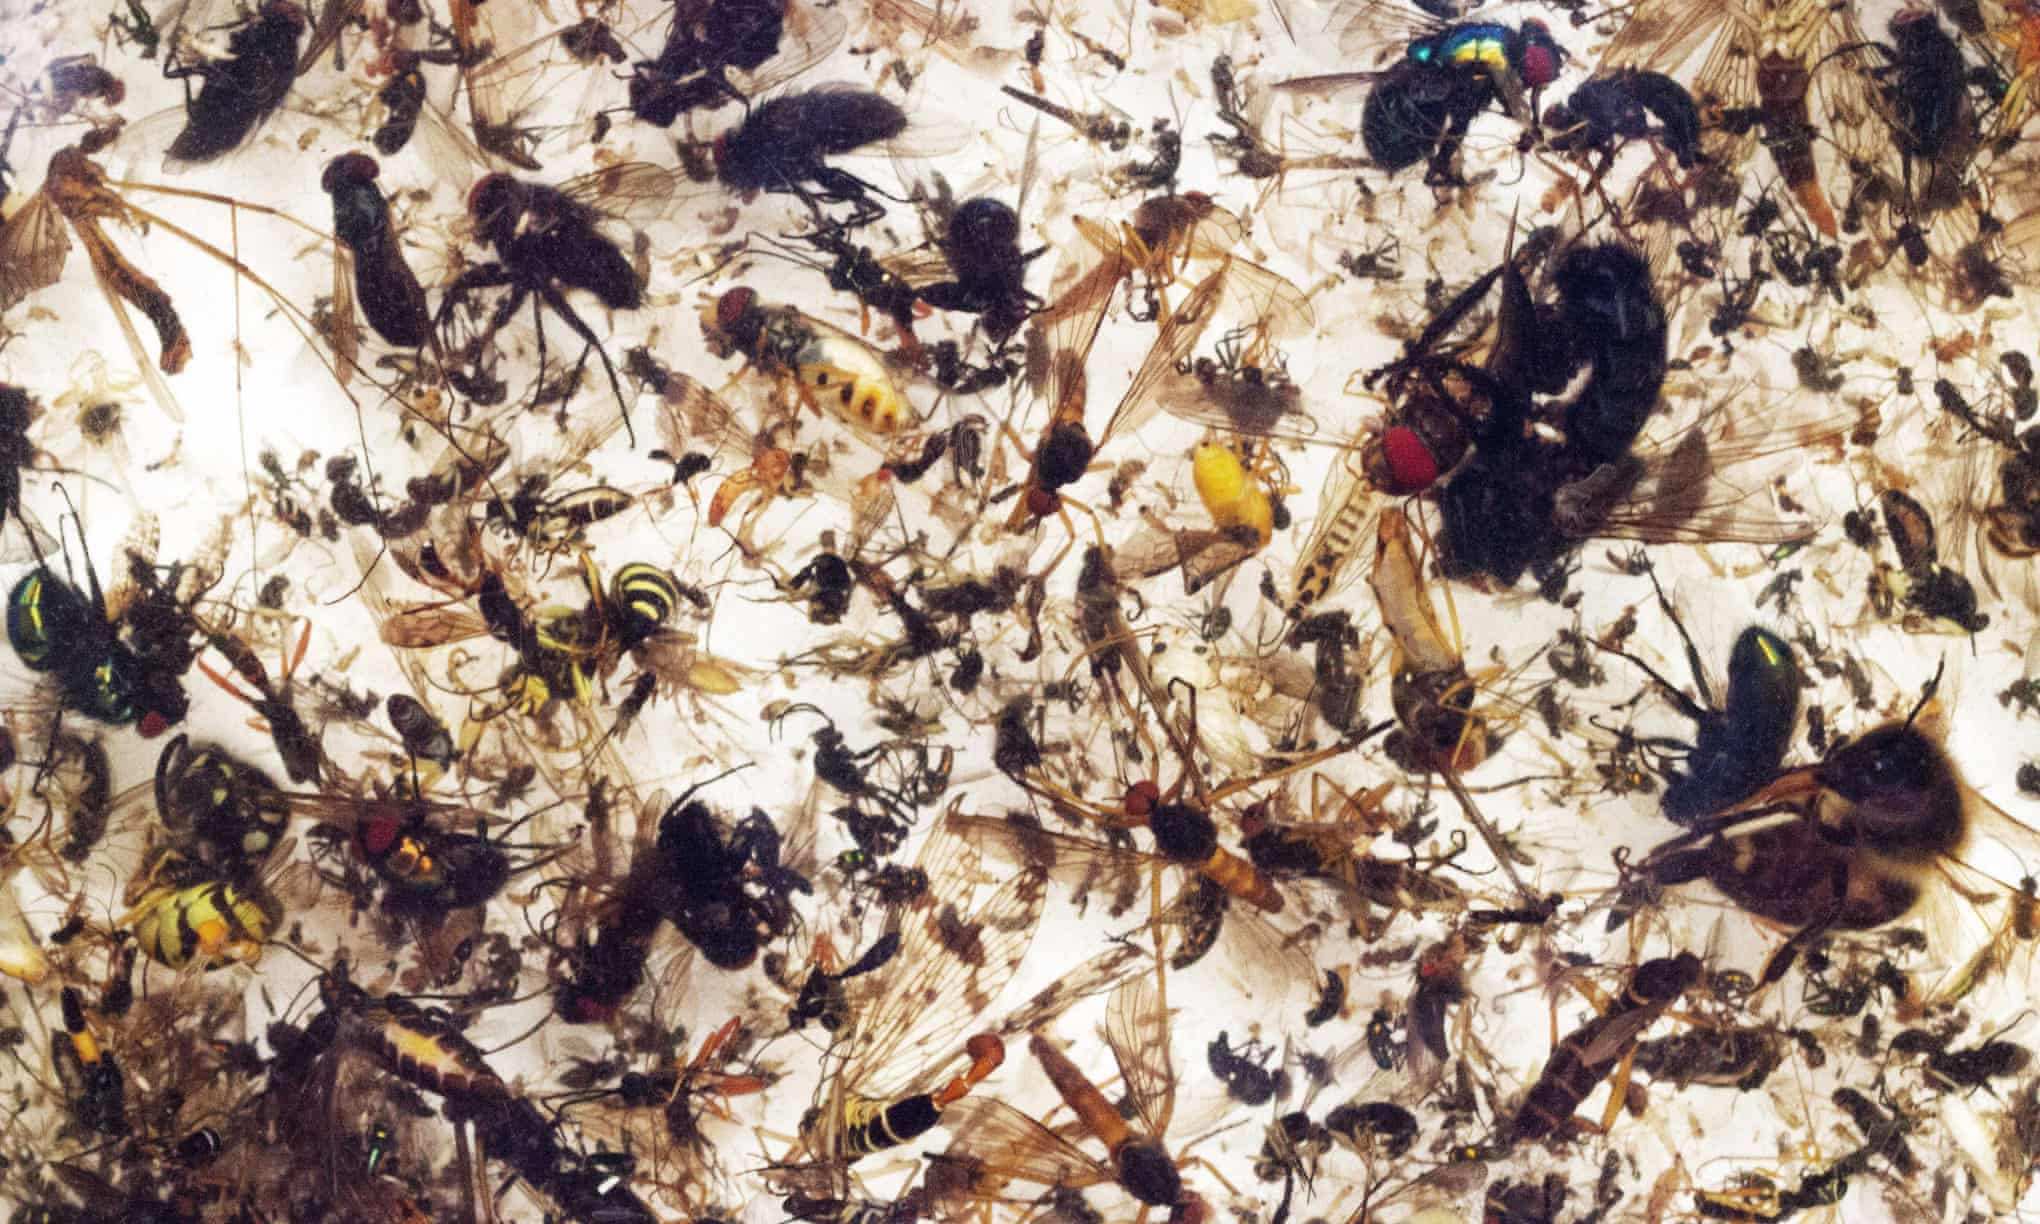 Insects going extinct precipitously